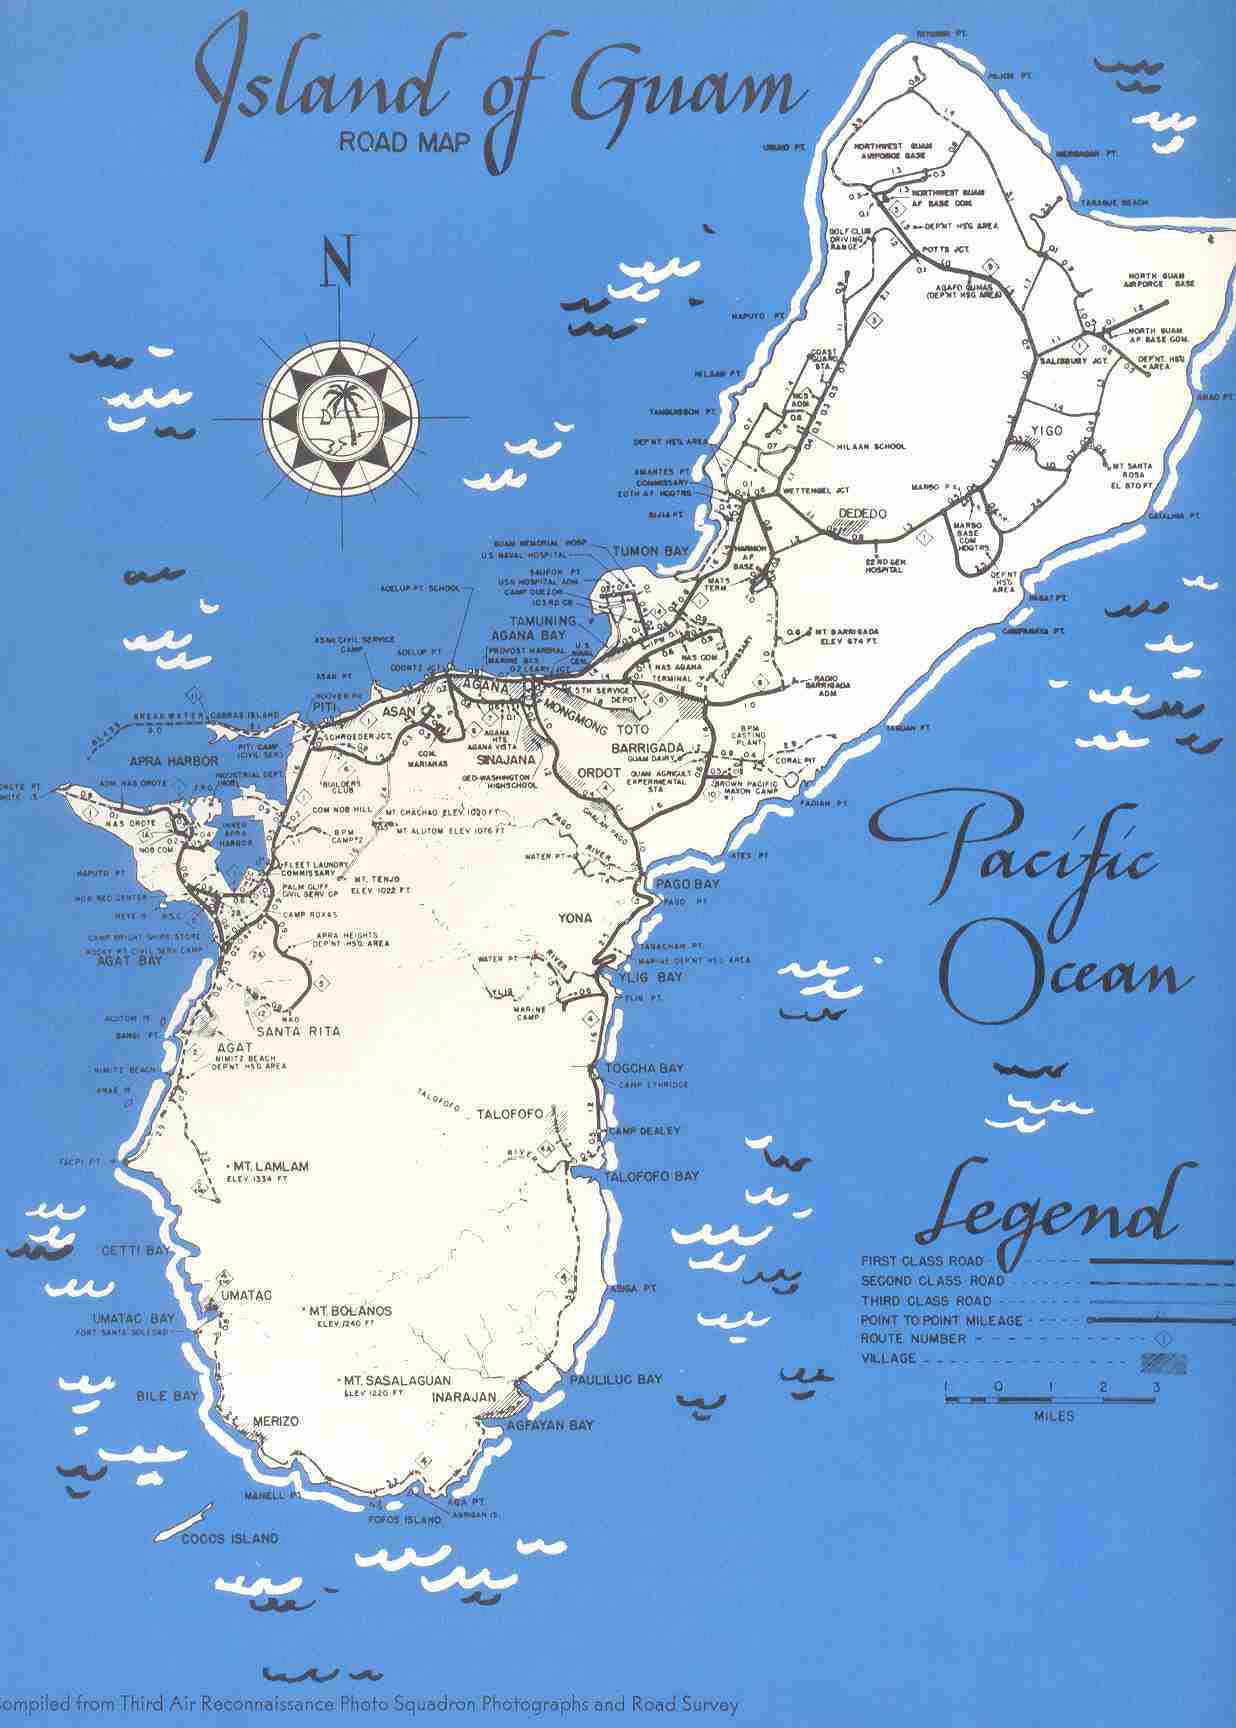 Detailed old road map of Guam 1950. Guam detailed old road ...